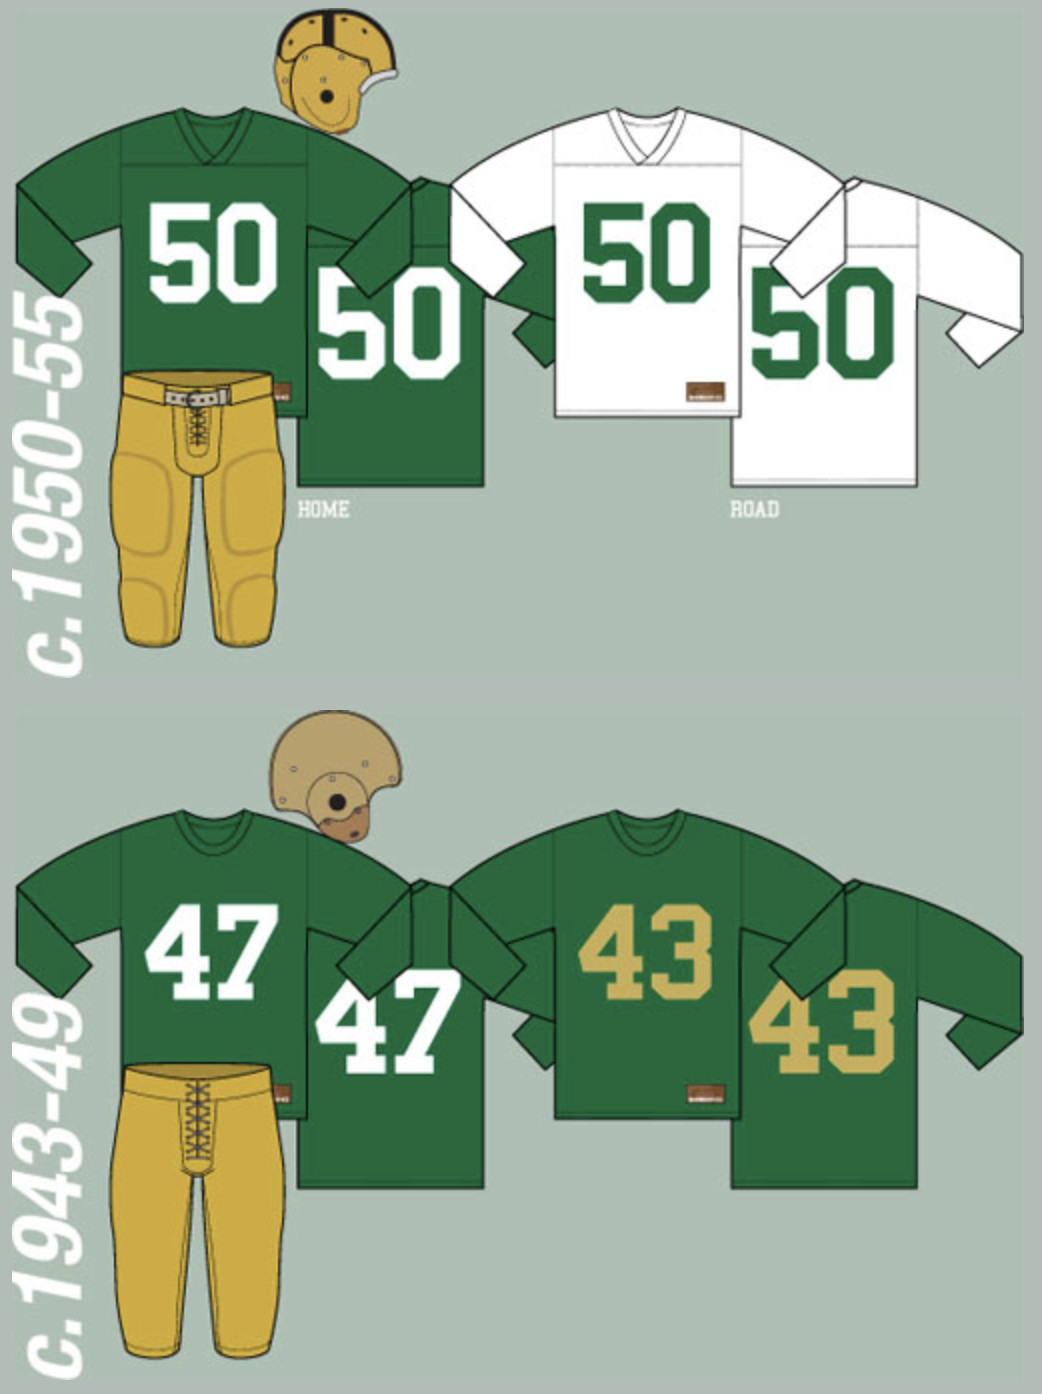 63603f6e75e Will Notre Dame Will Wear Green Jerseys Against Florida State? - One ...